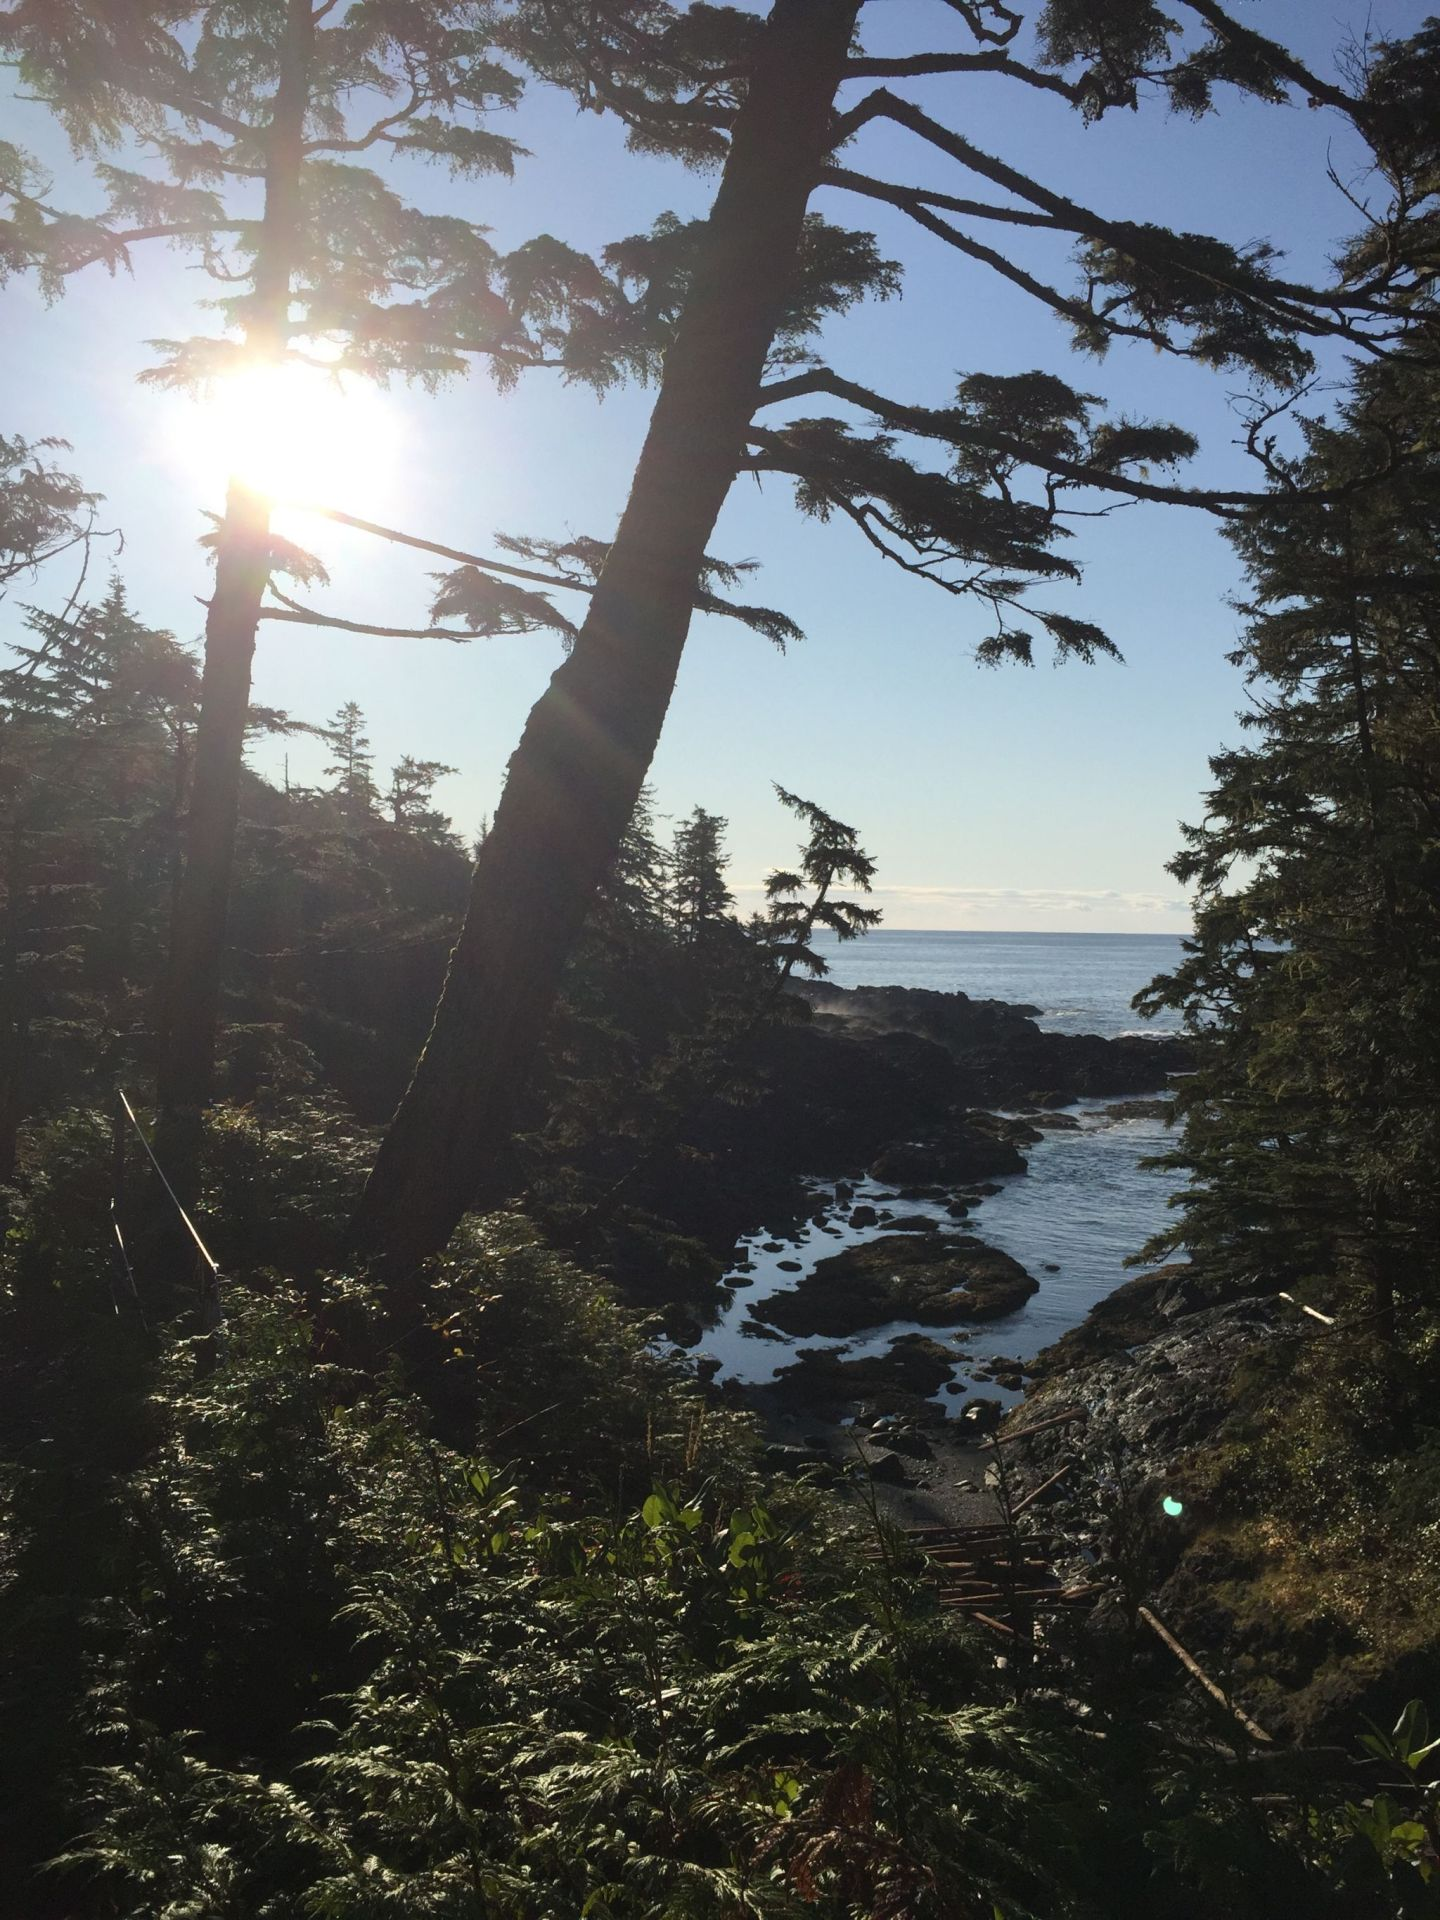 Wild Pacific Trail, Ucluelet on Vancouver Island